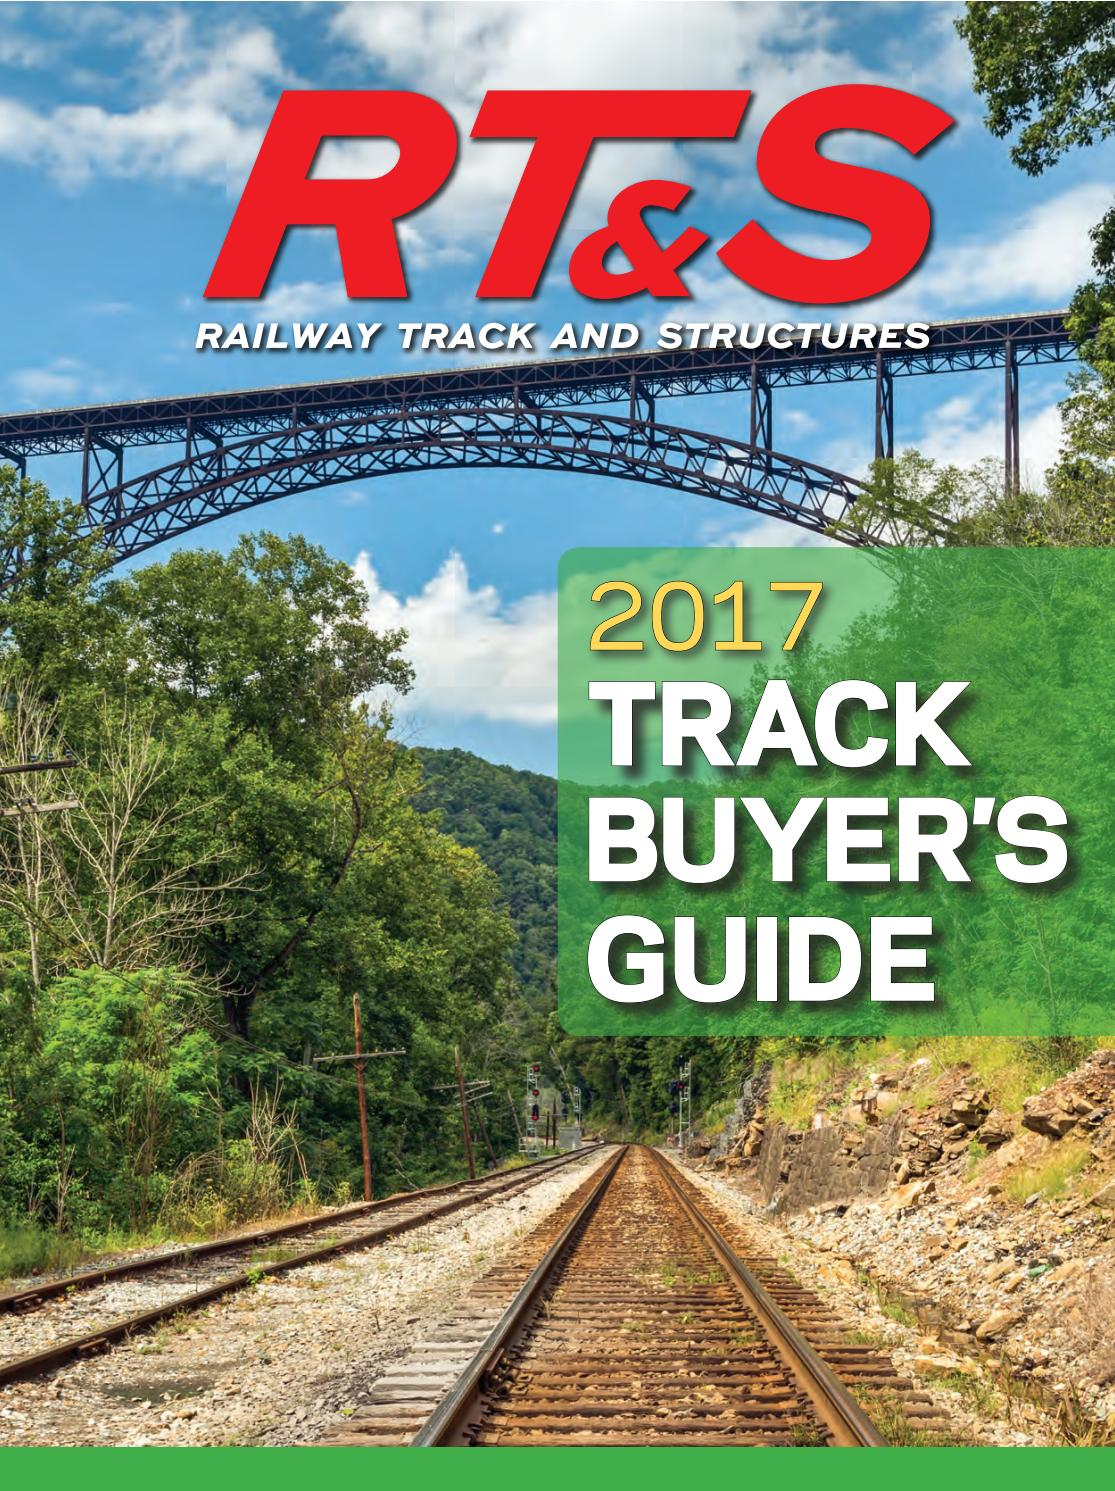 2017 RT&S Track Buyer's Guide by Railway Track & Structures